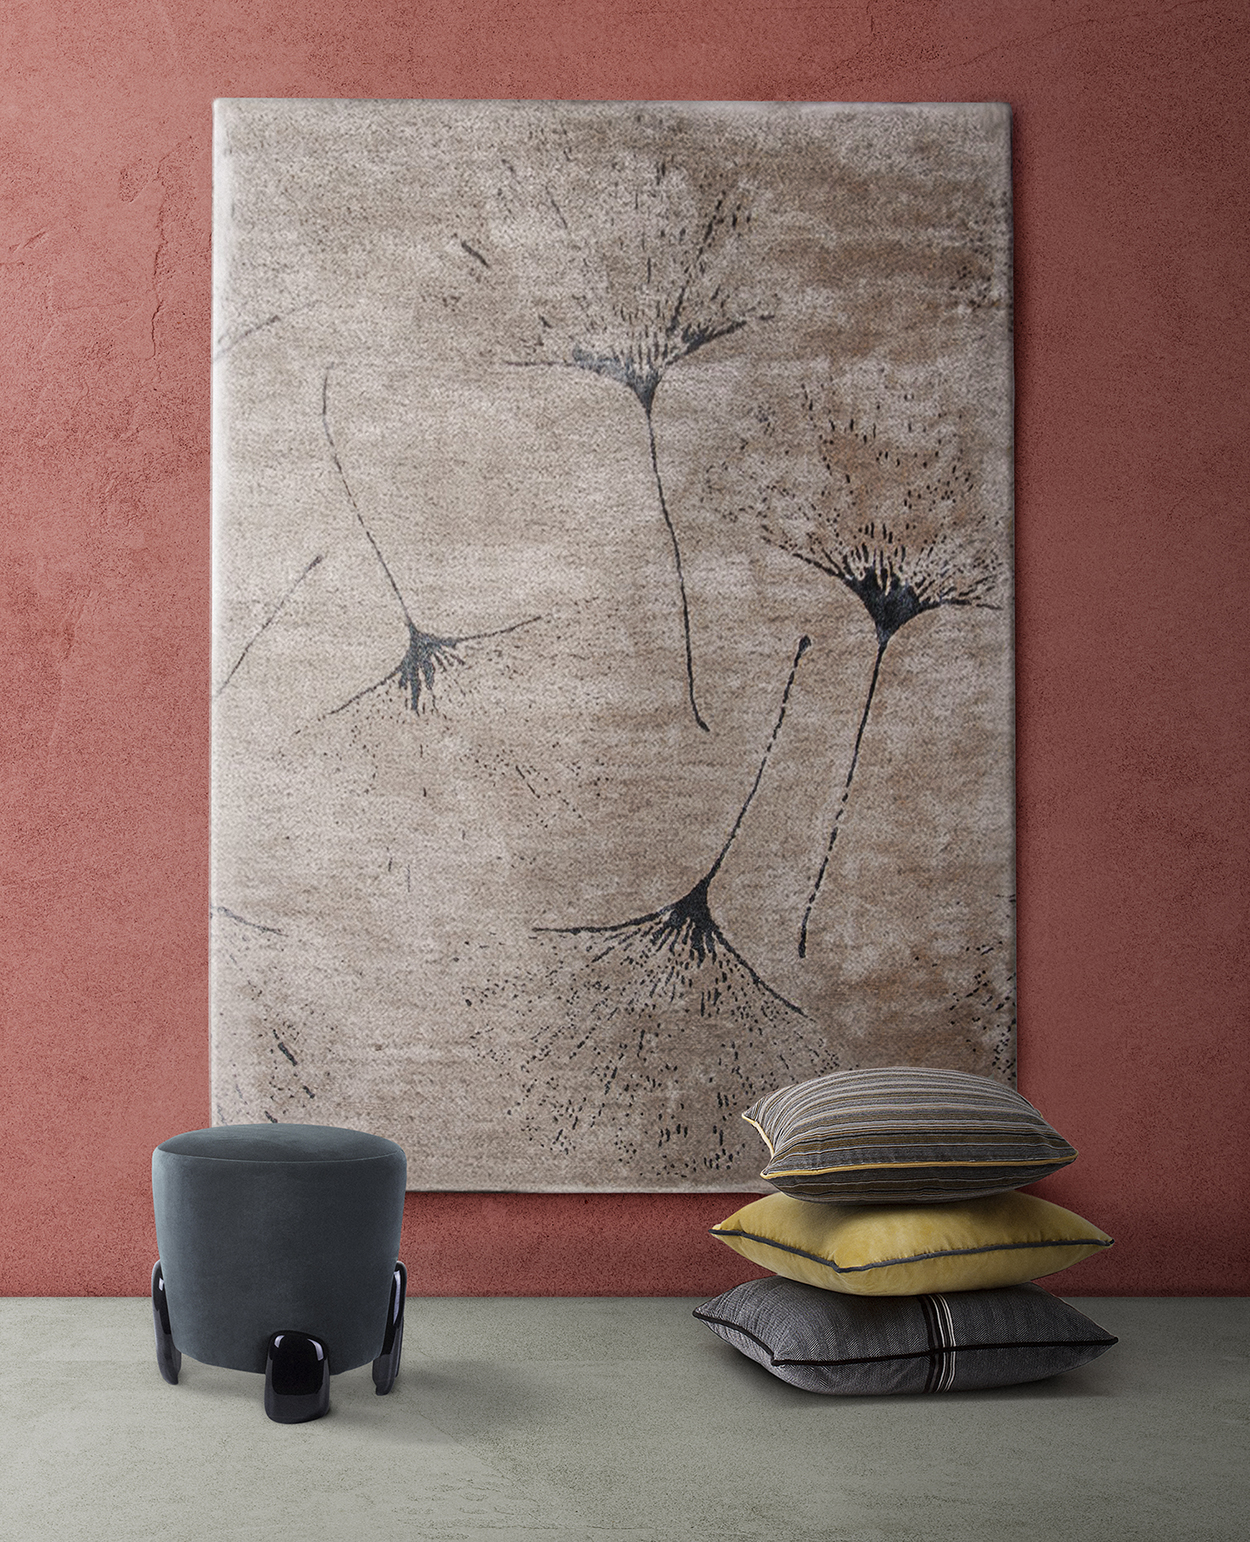 Hanging Rugs: Pieces Of Art On Your Wall